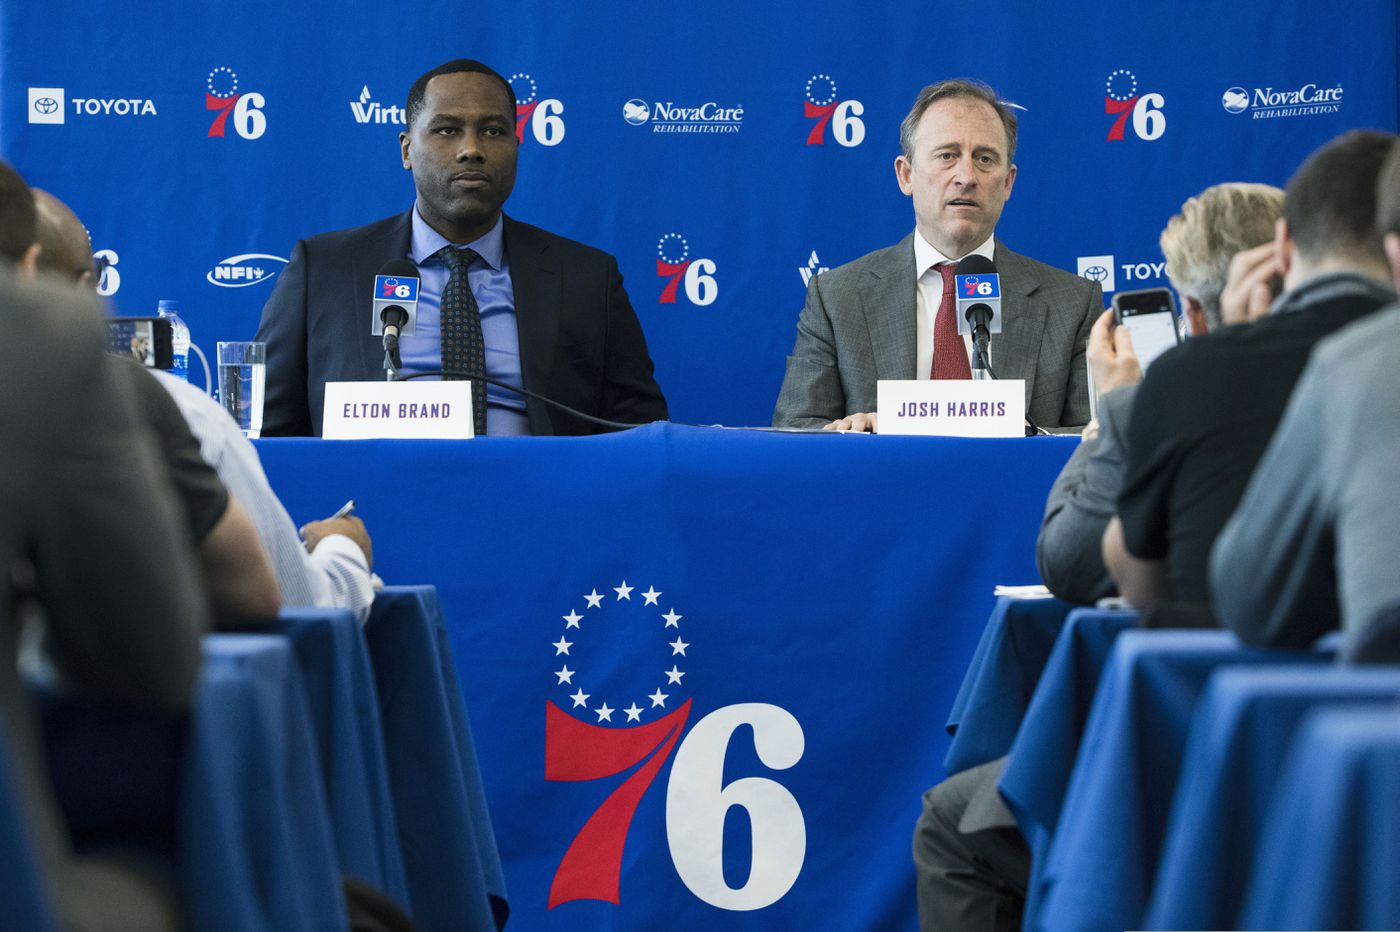 Sixers, parent company commit $20 million to Black businesses, social justice, diversity | Marcus Hayes